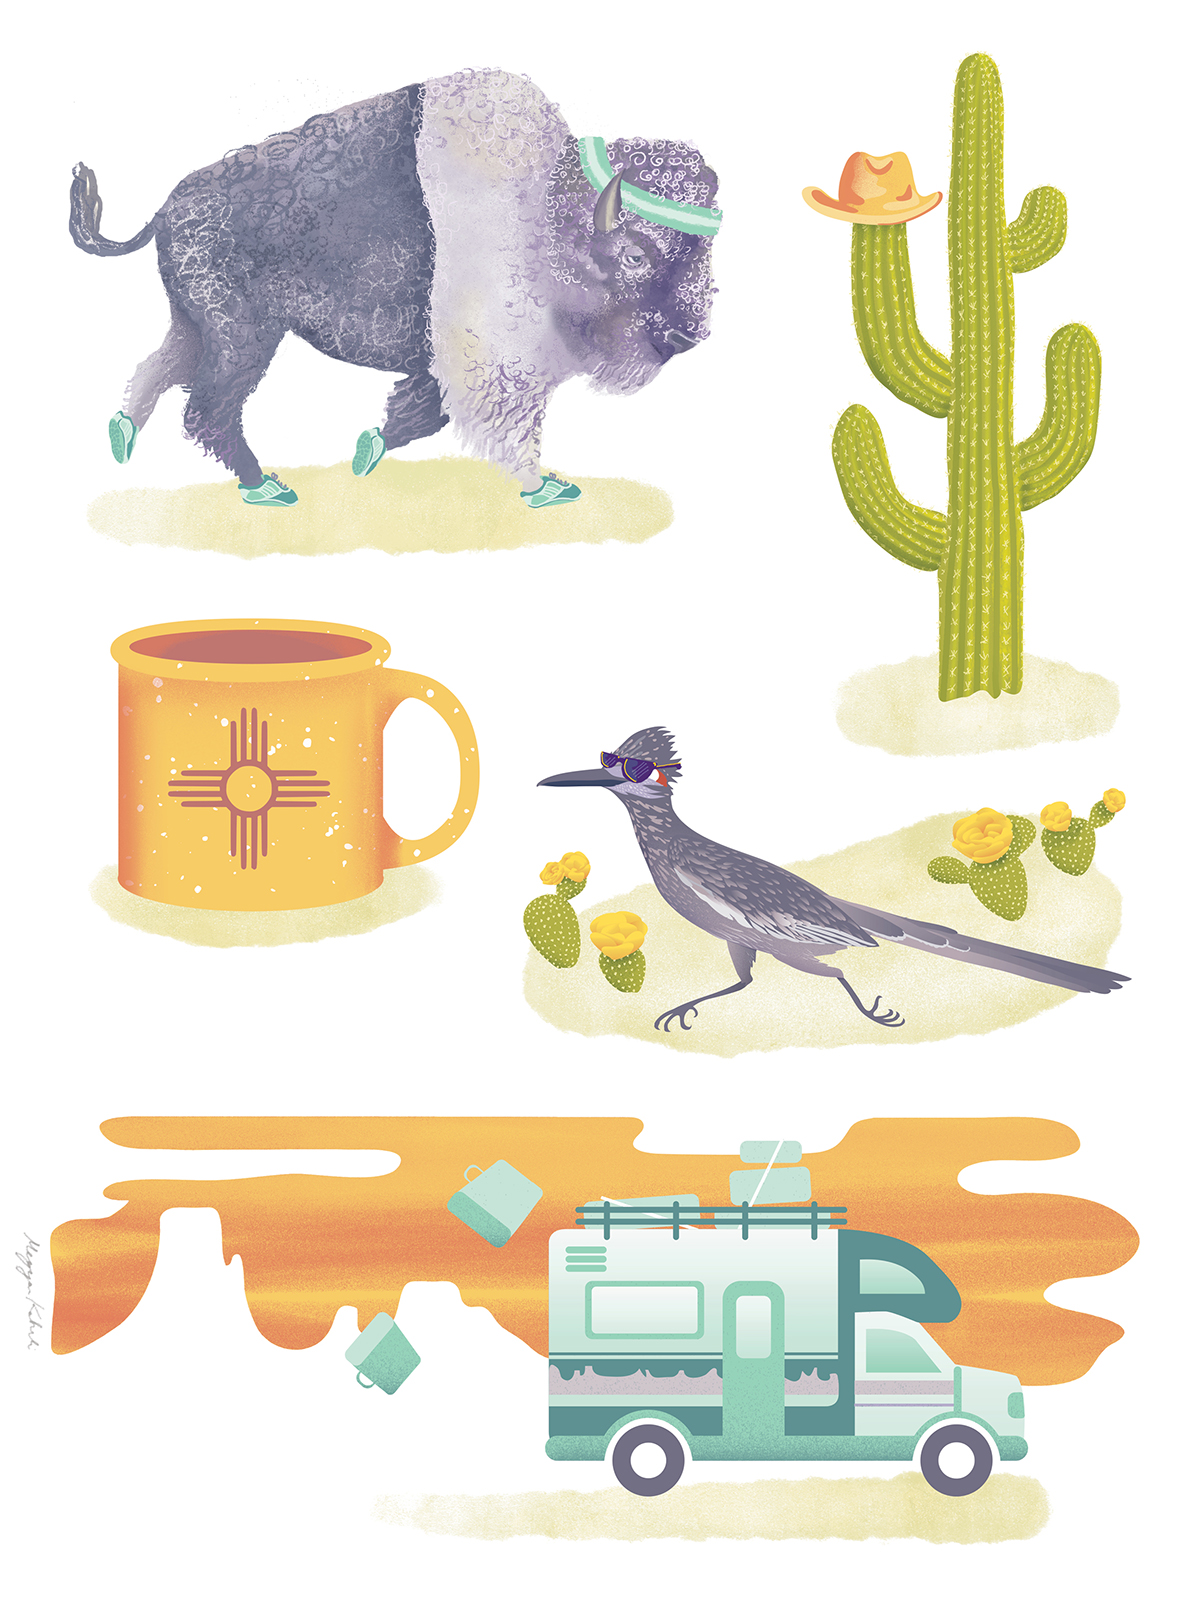 Out West! Illustration commission for an adventuresome family.